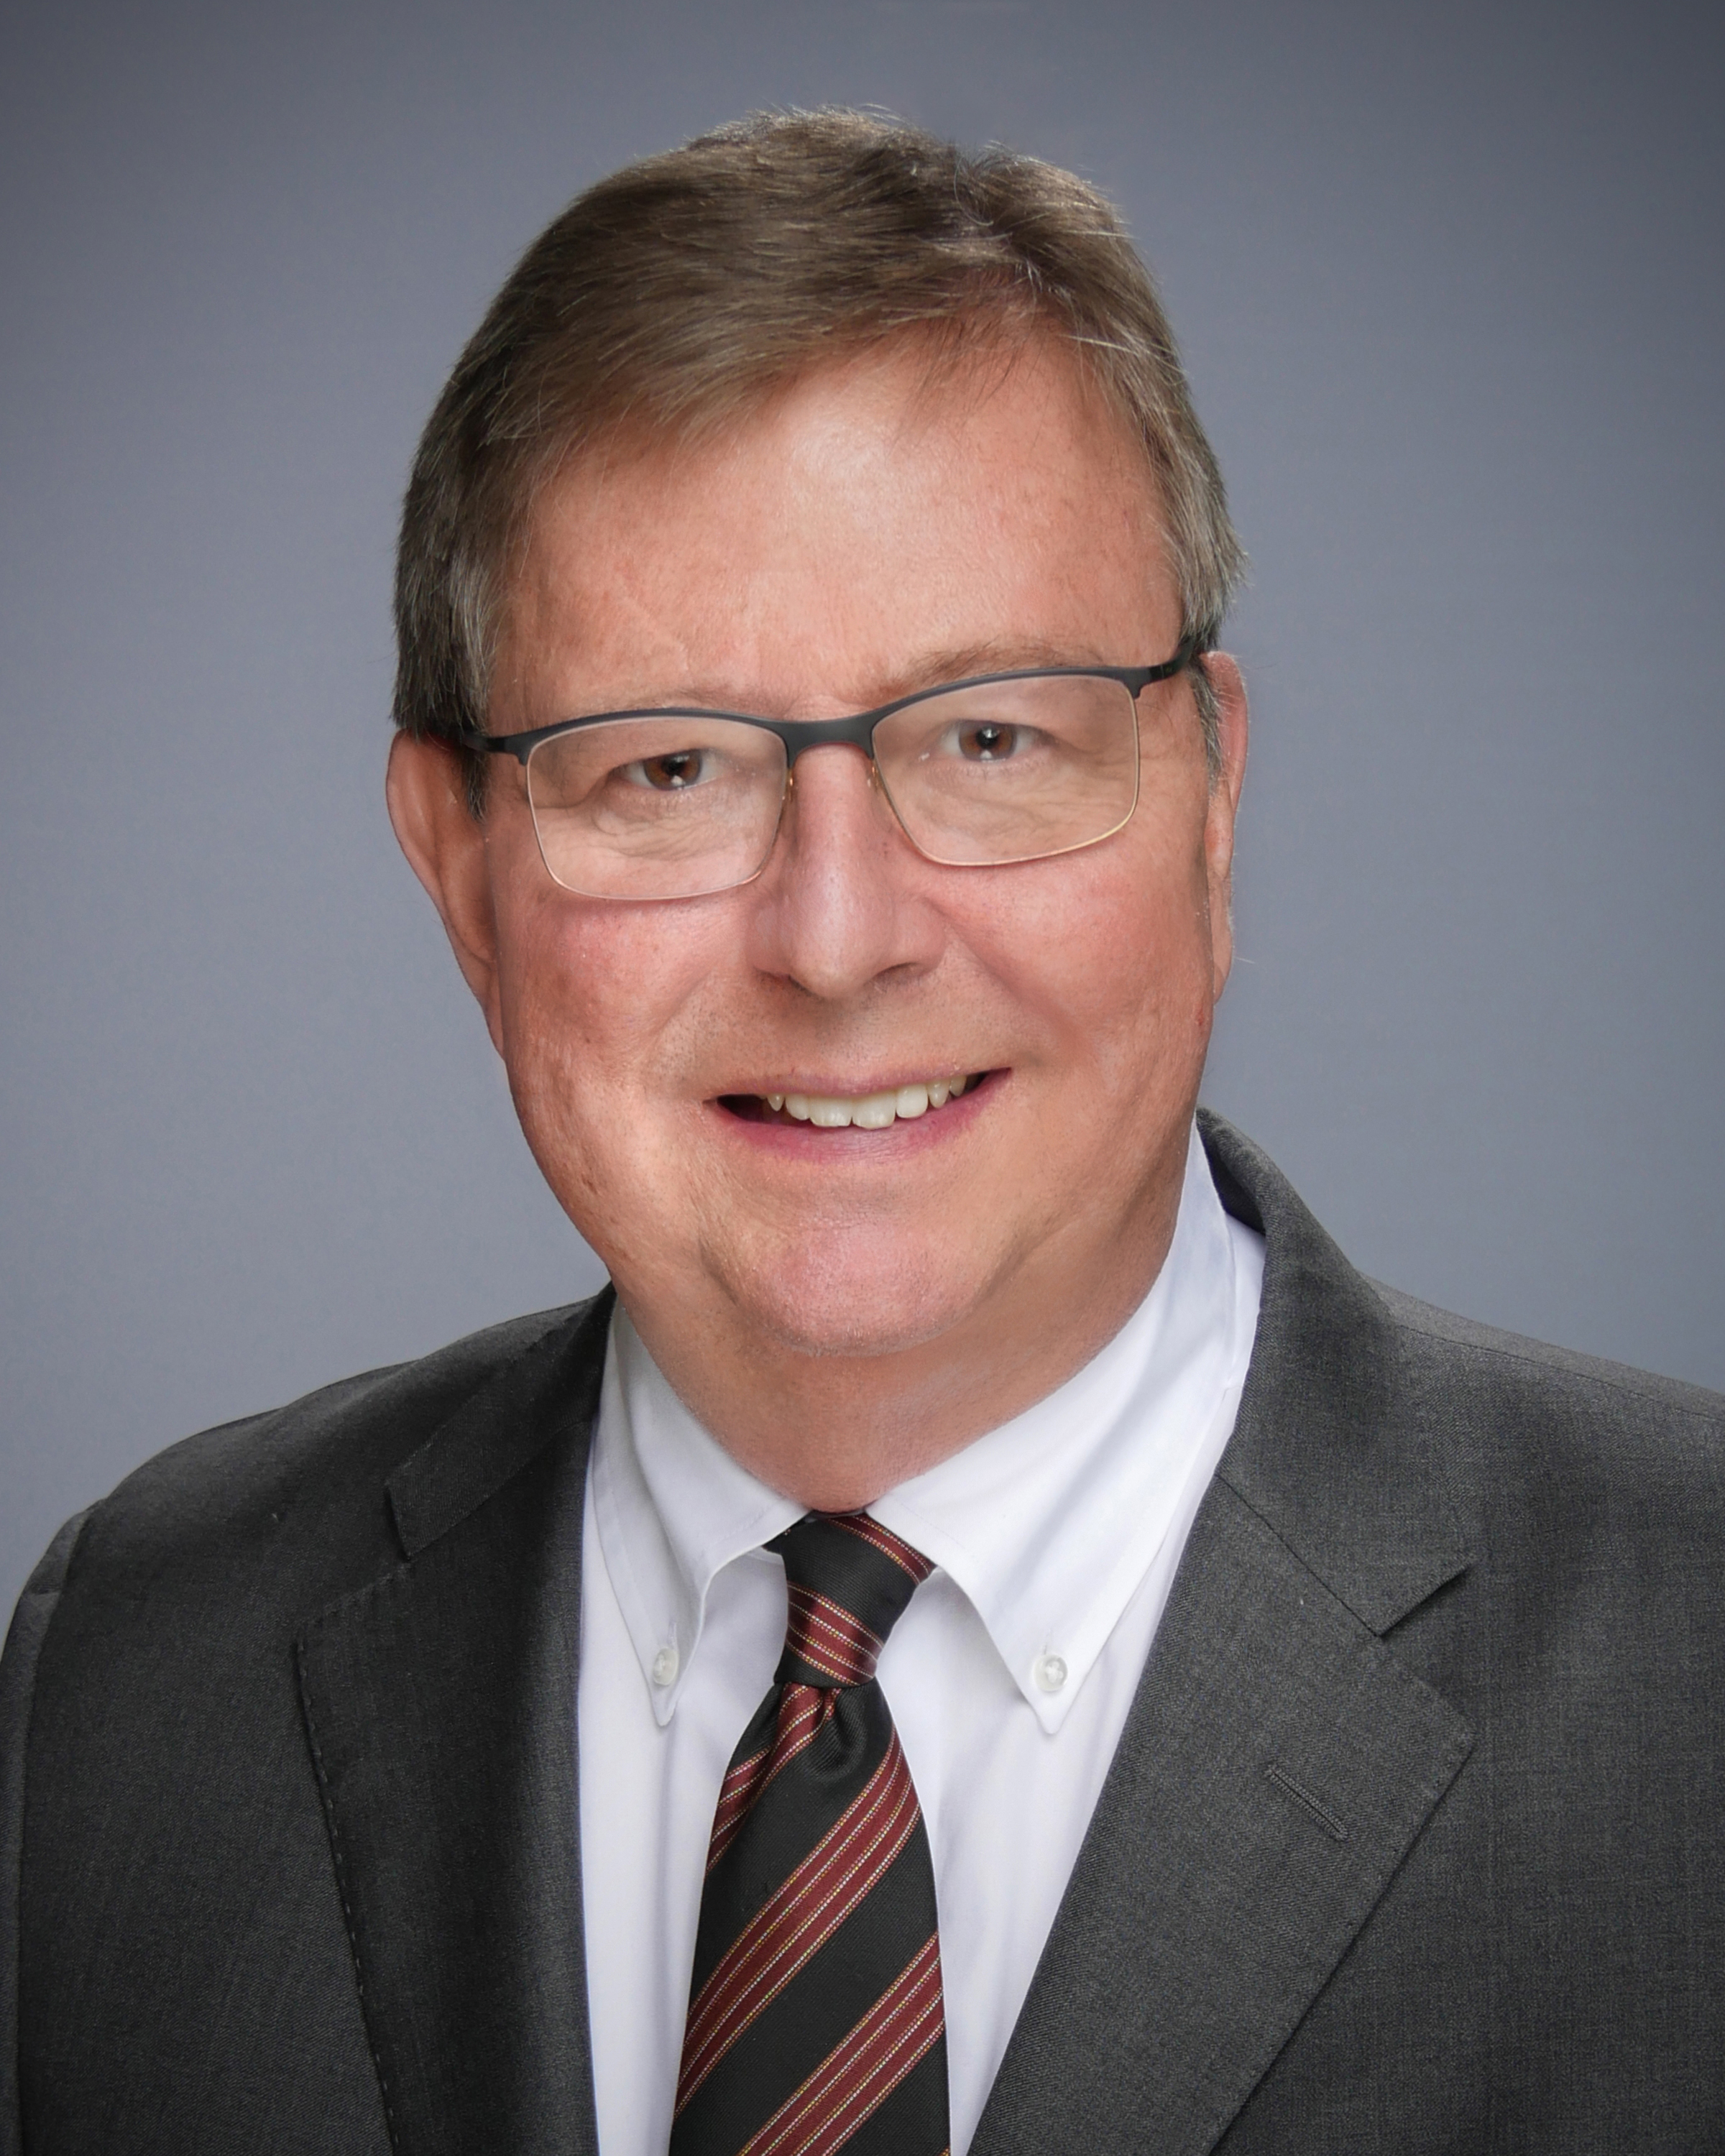 Robert (Rob) H. Curry, President & CEO of Emanate Health